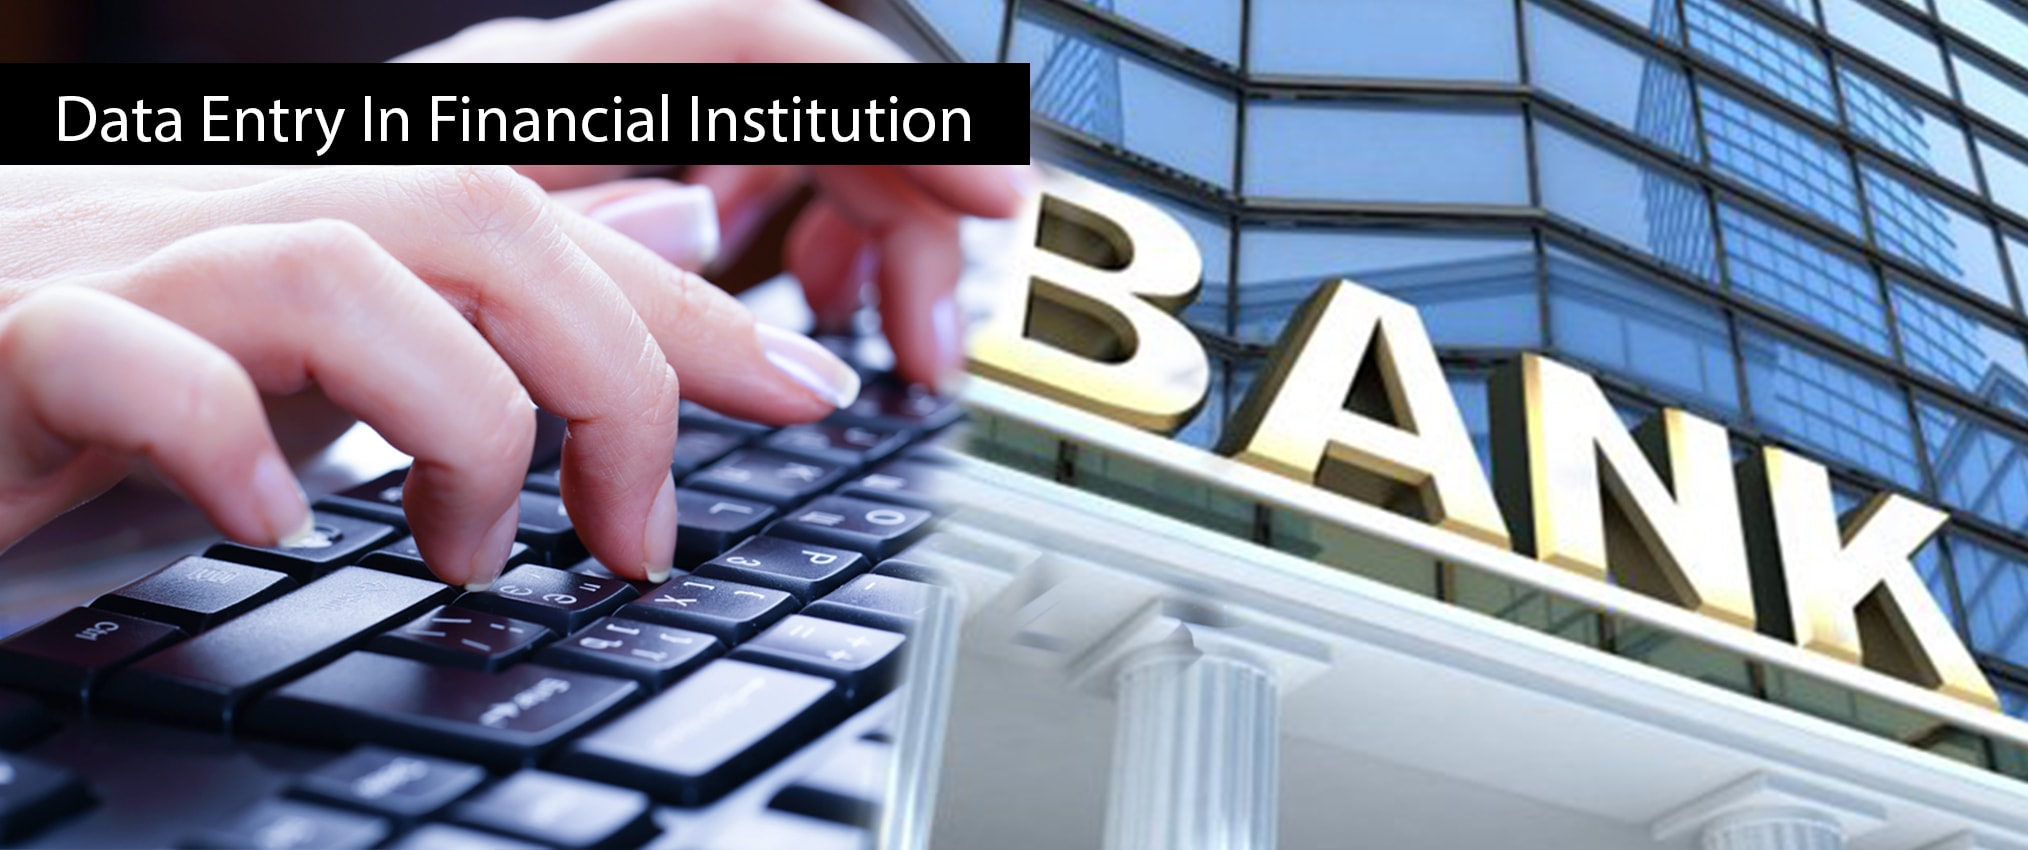 data-entry-in-financial-institution